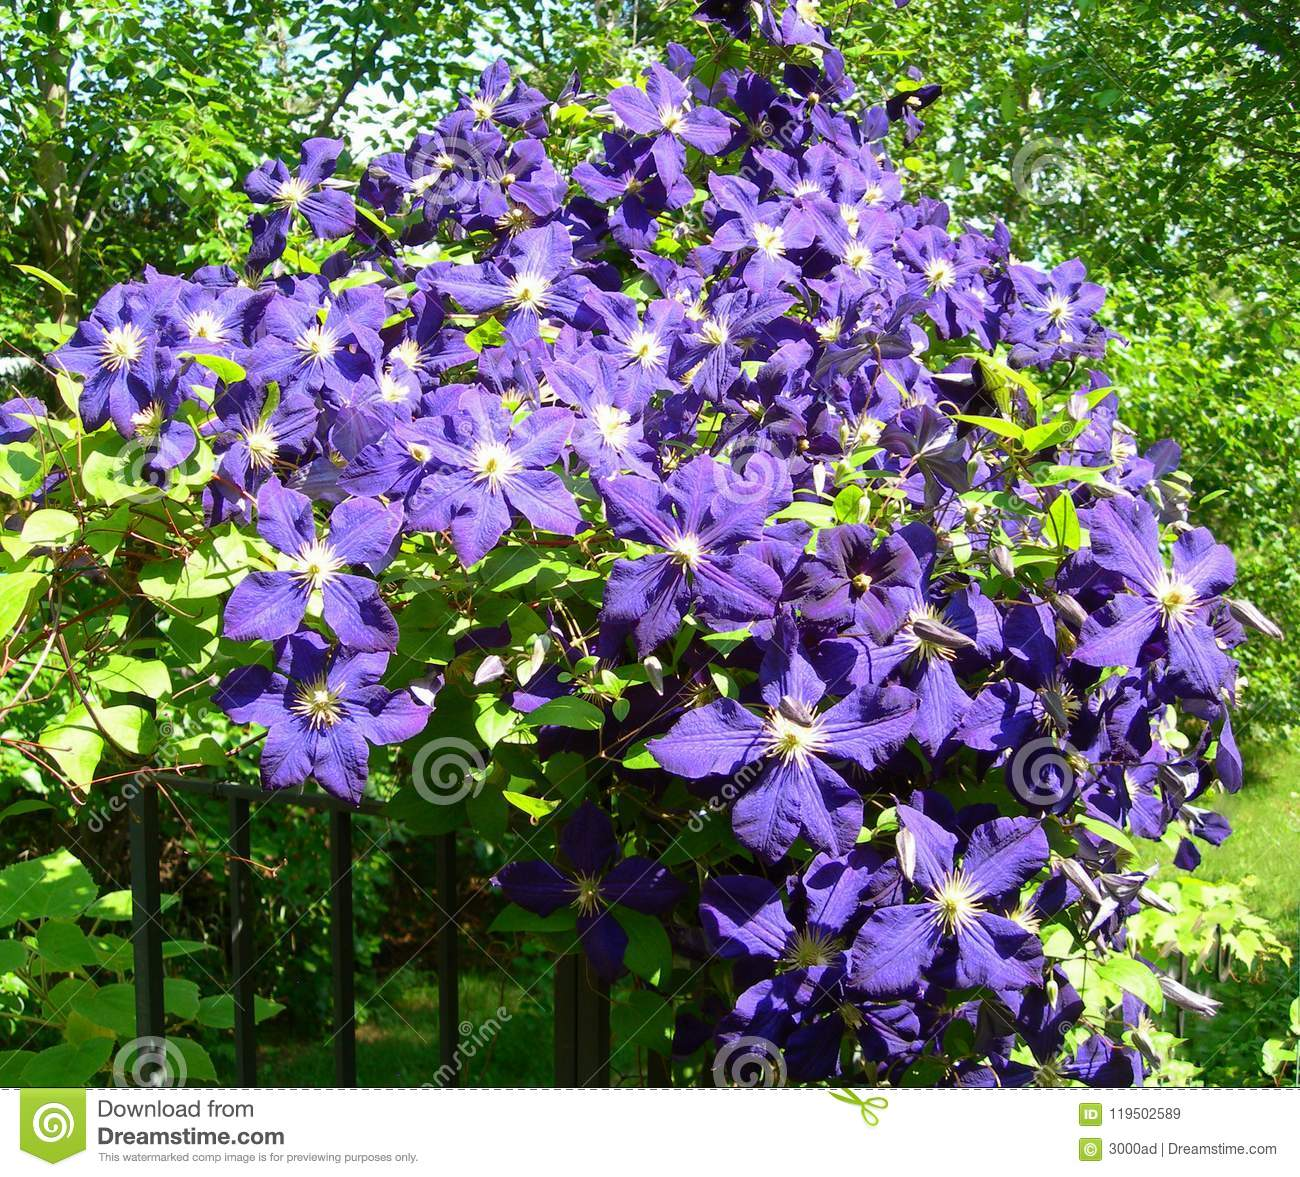 A Climbing Vine Of Violet Clematis Flowers Stock Image Image Of